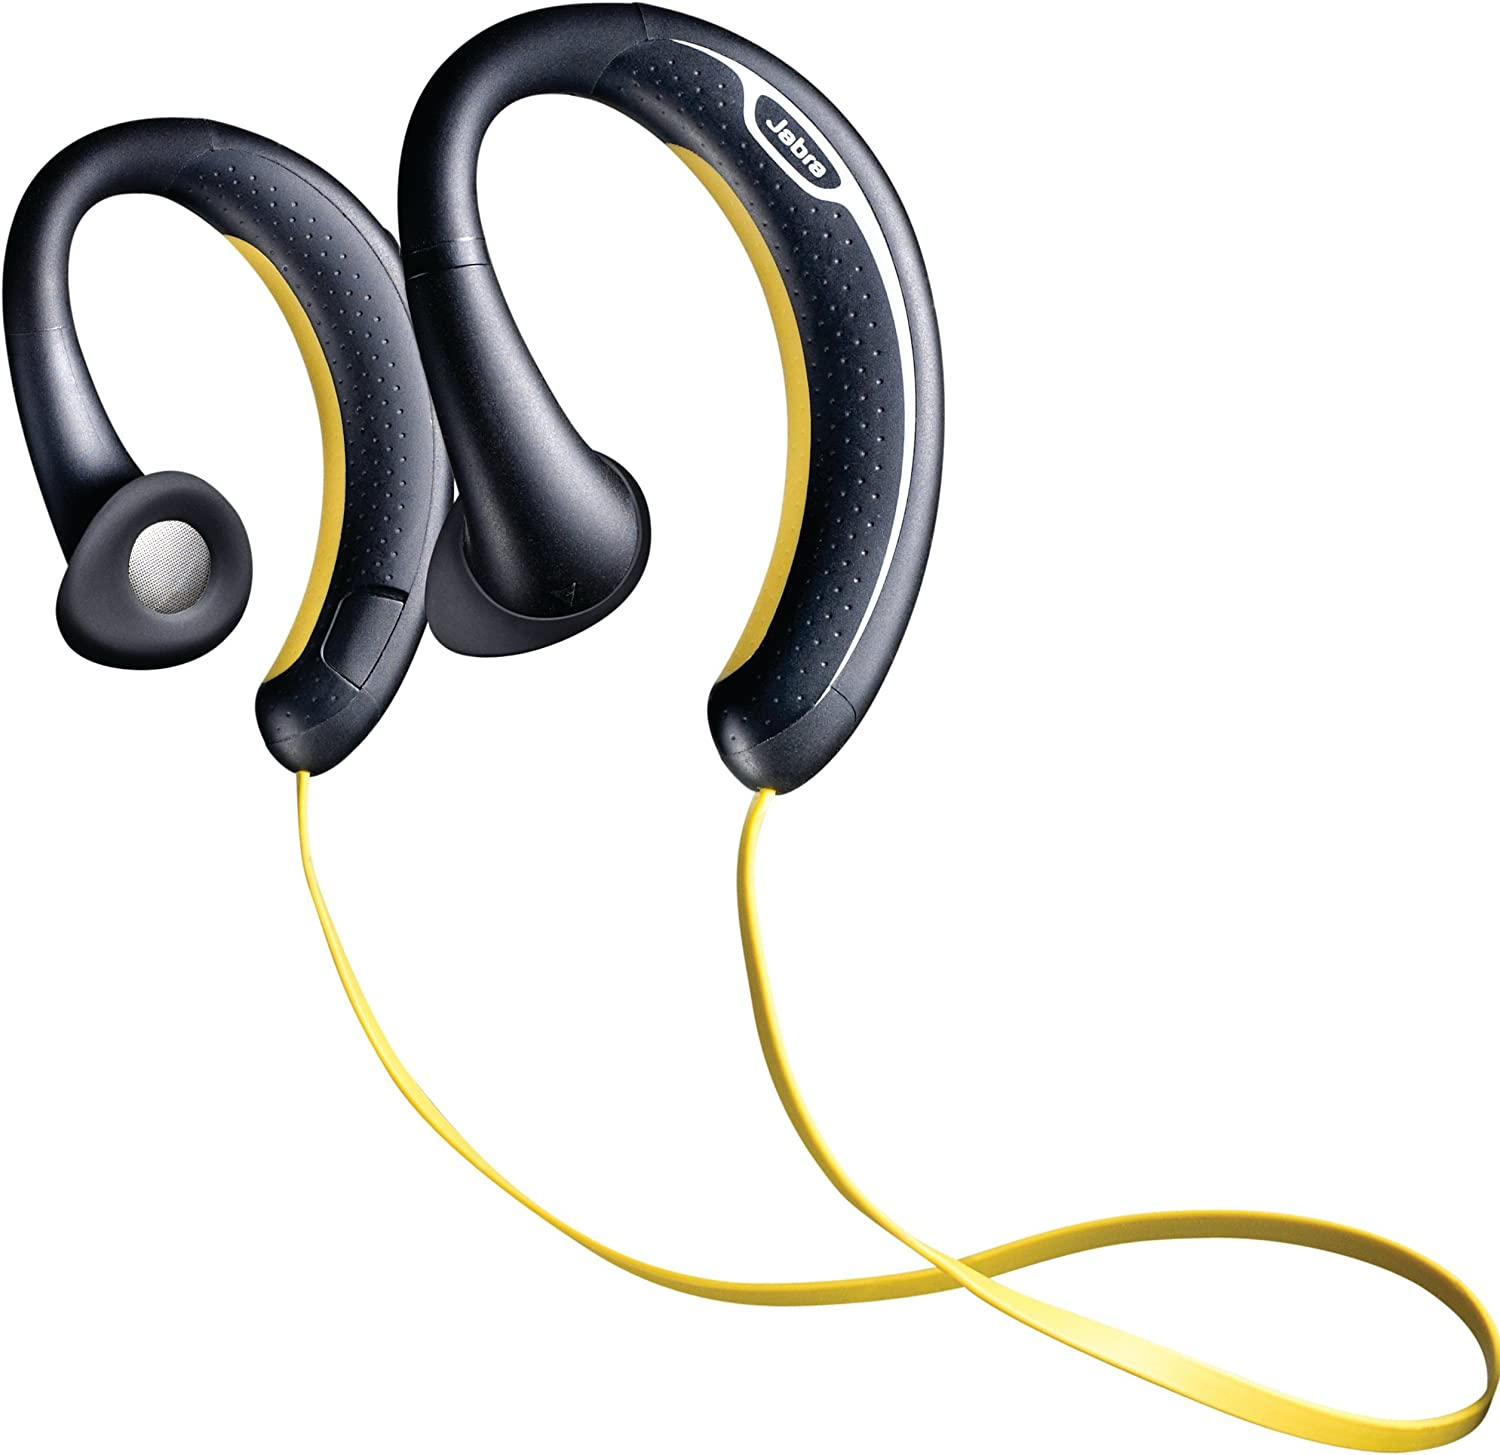 Amazon Com Jabra Sport Bluetooth Stereo Headset Black Yellow Discontinued By Manufacturer